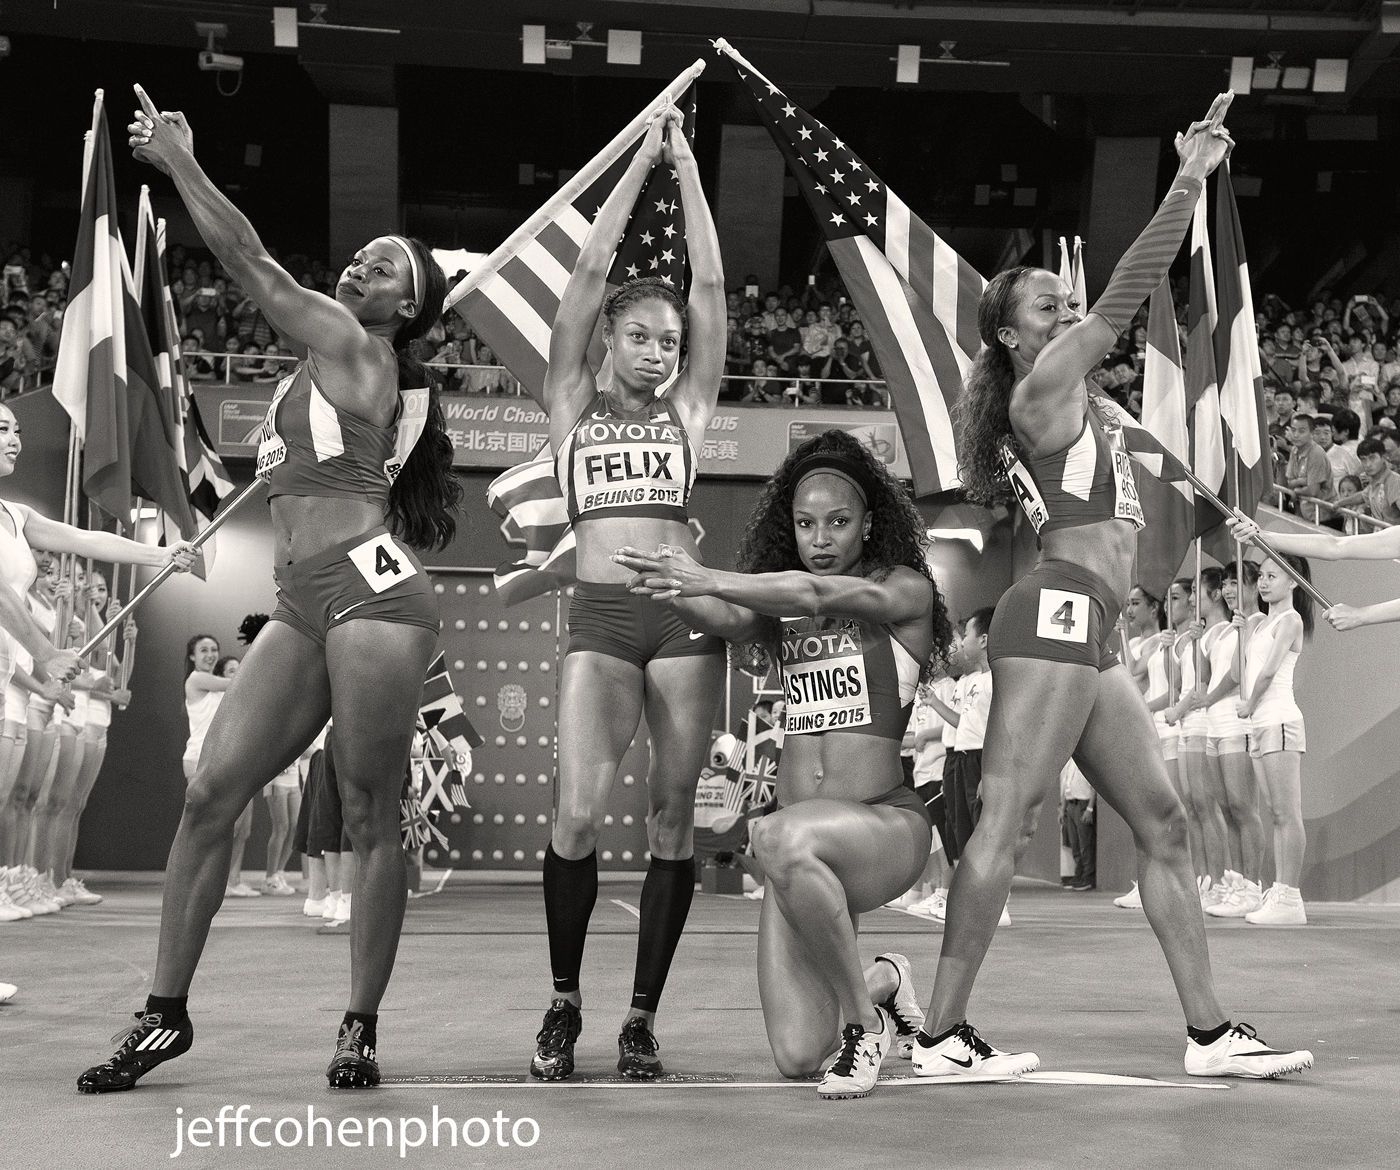 1beijing2015_night_9_4x400_angels_usa_jeff_cohen_photo_36204_web.jpg